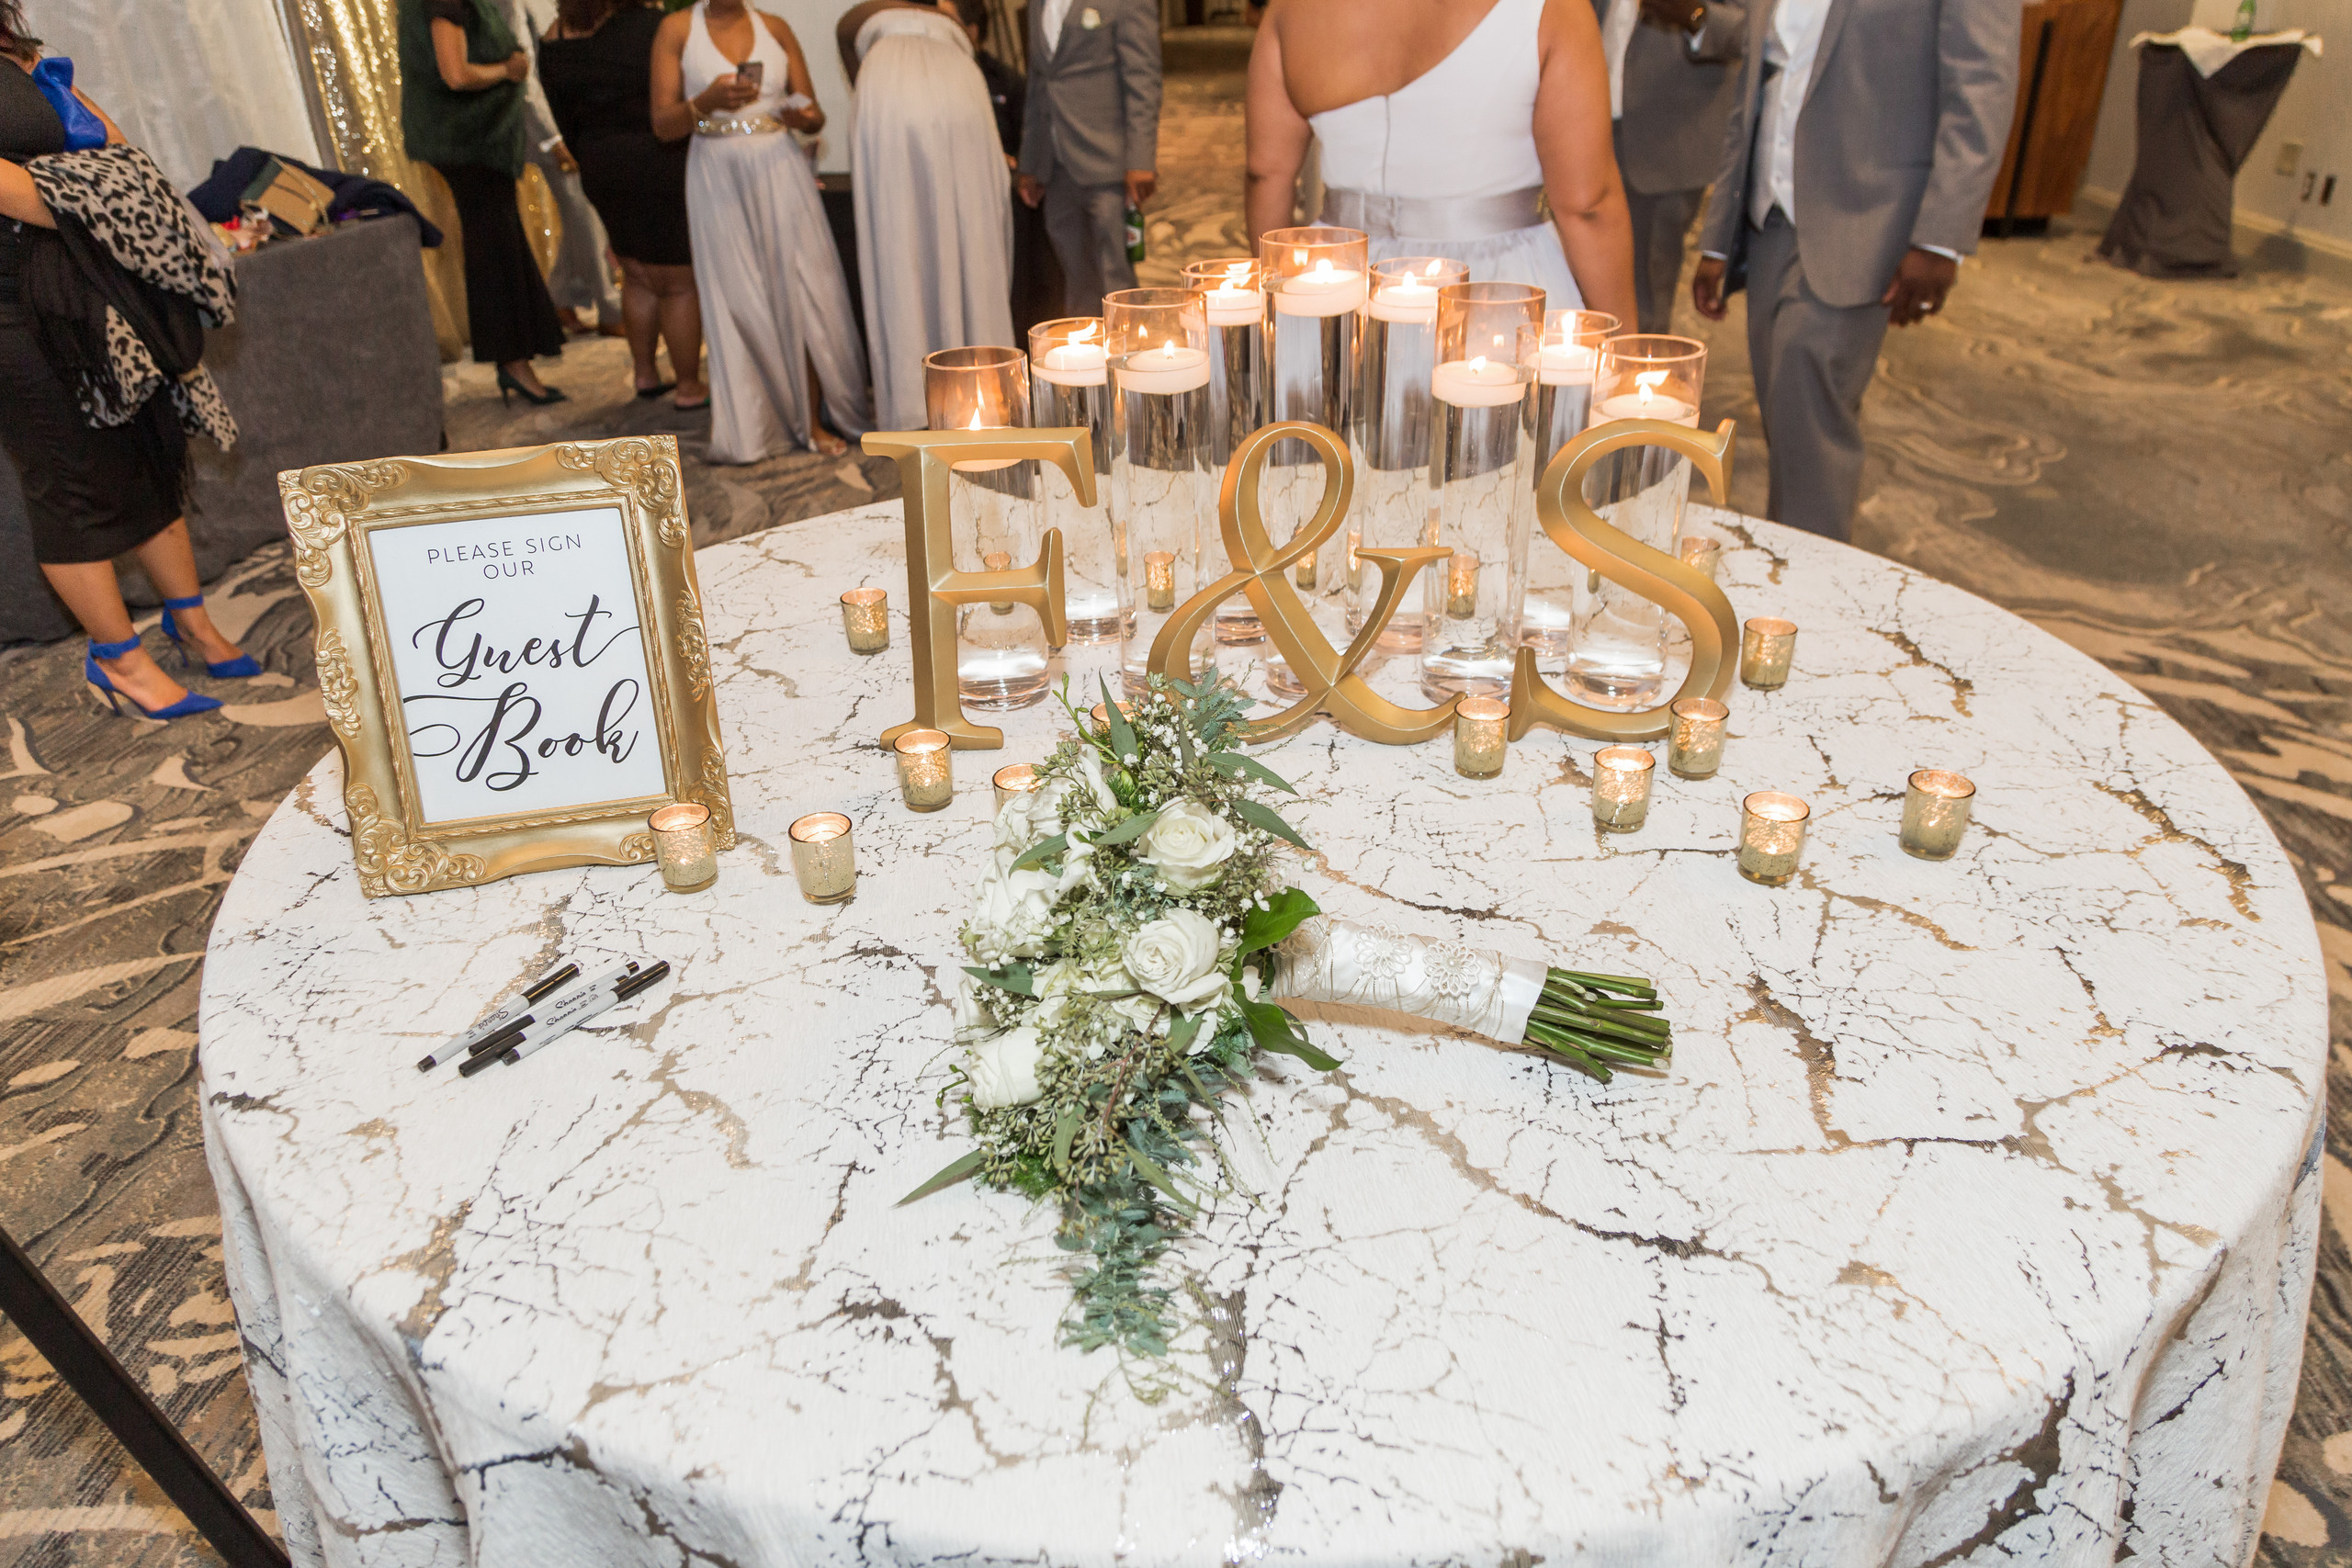 The marble and gold themed welcome table during the wedding reception at the Hilton Main in Norfolk, Virginia.